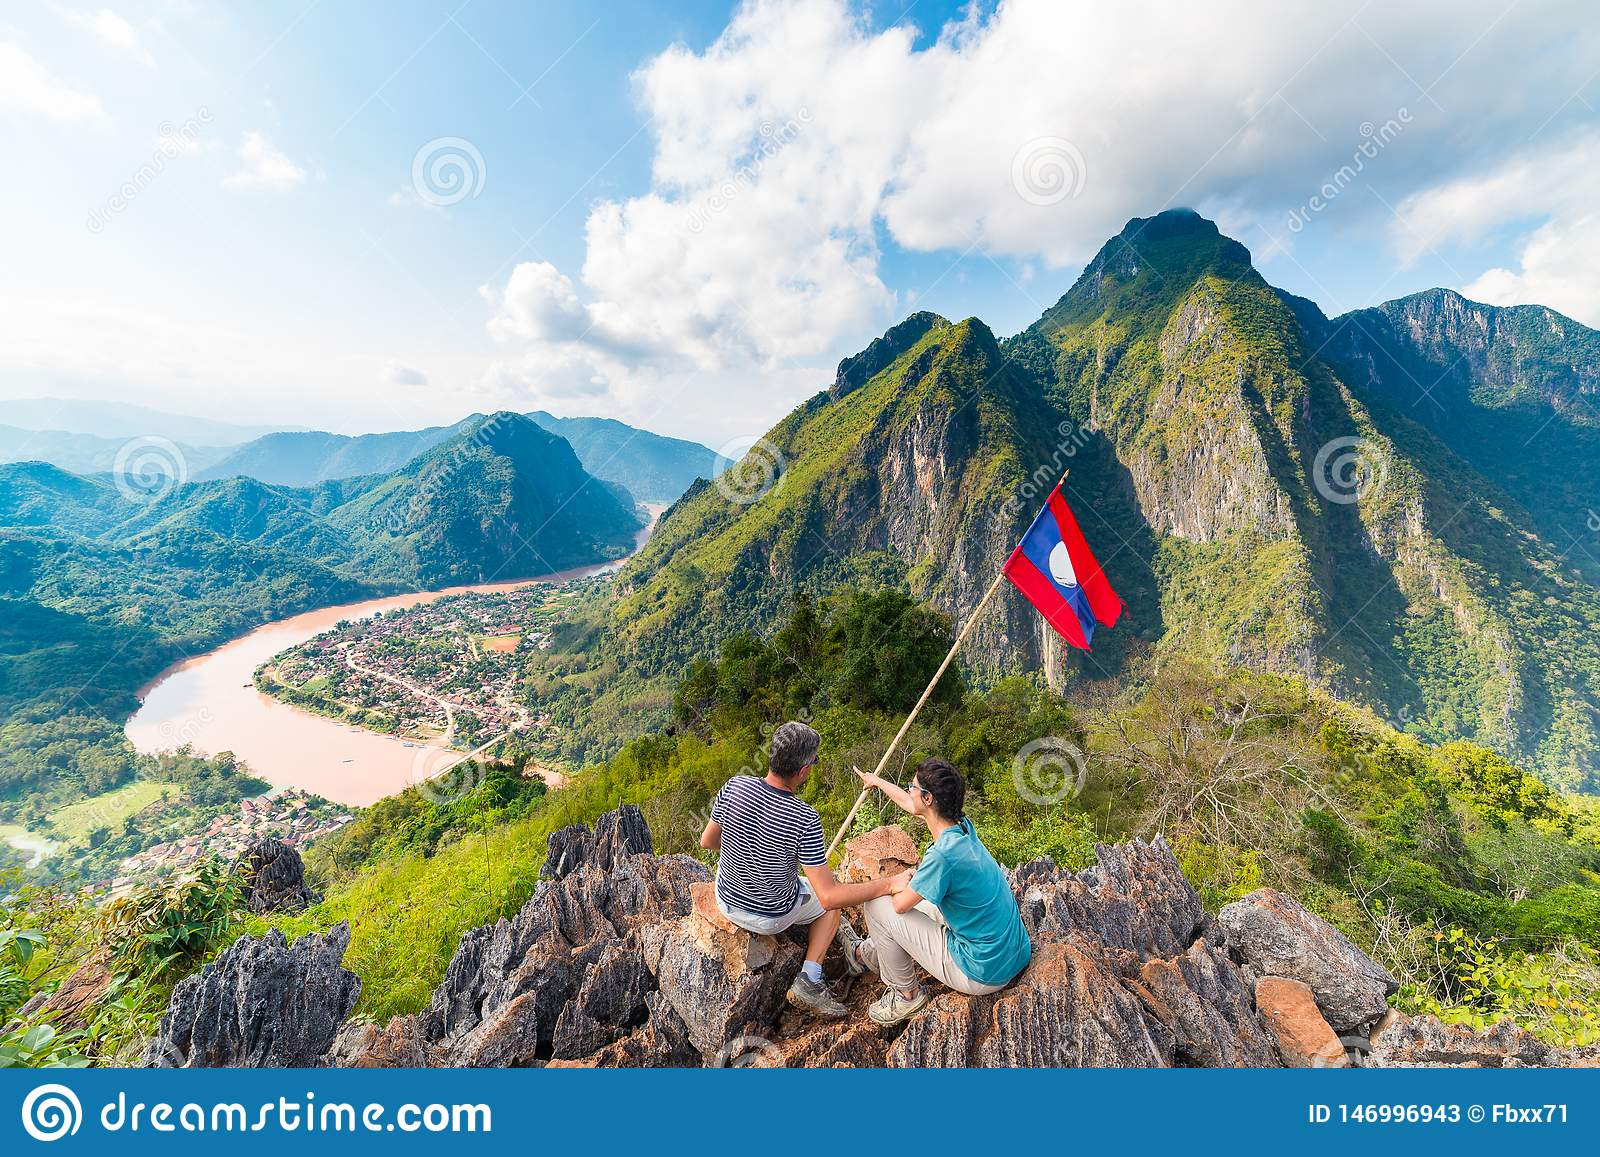 Couple conquering mountain top at Nong Khiaw panoramic view over Nam Ou River valley Laos national flag scenic mountain landscape